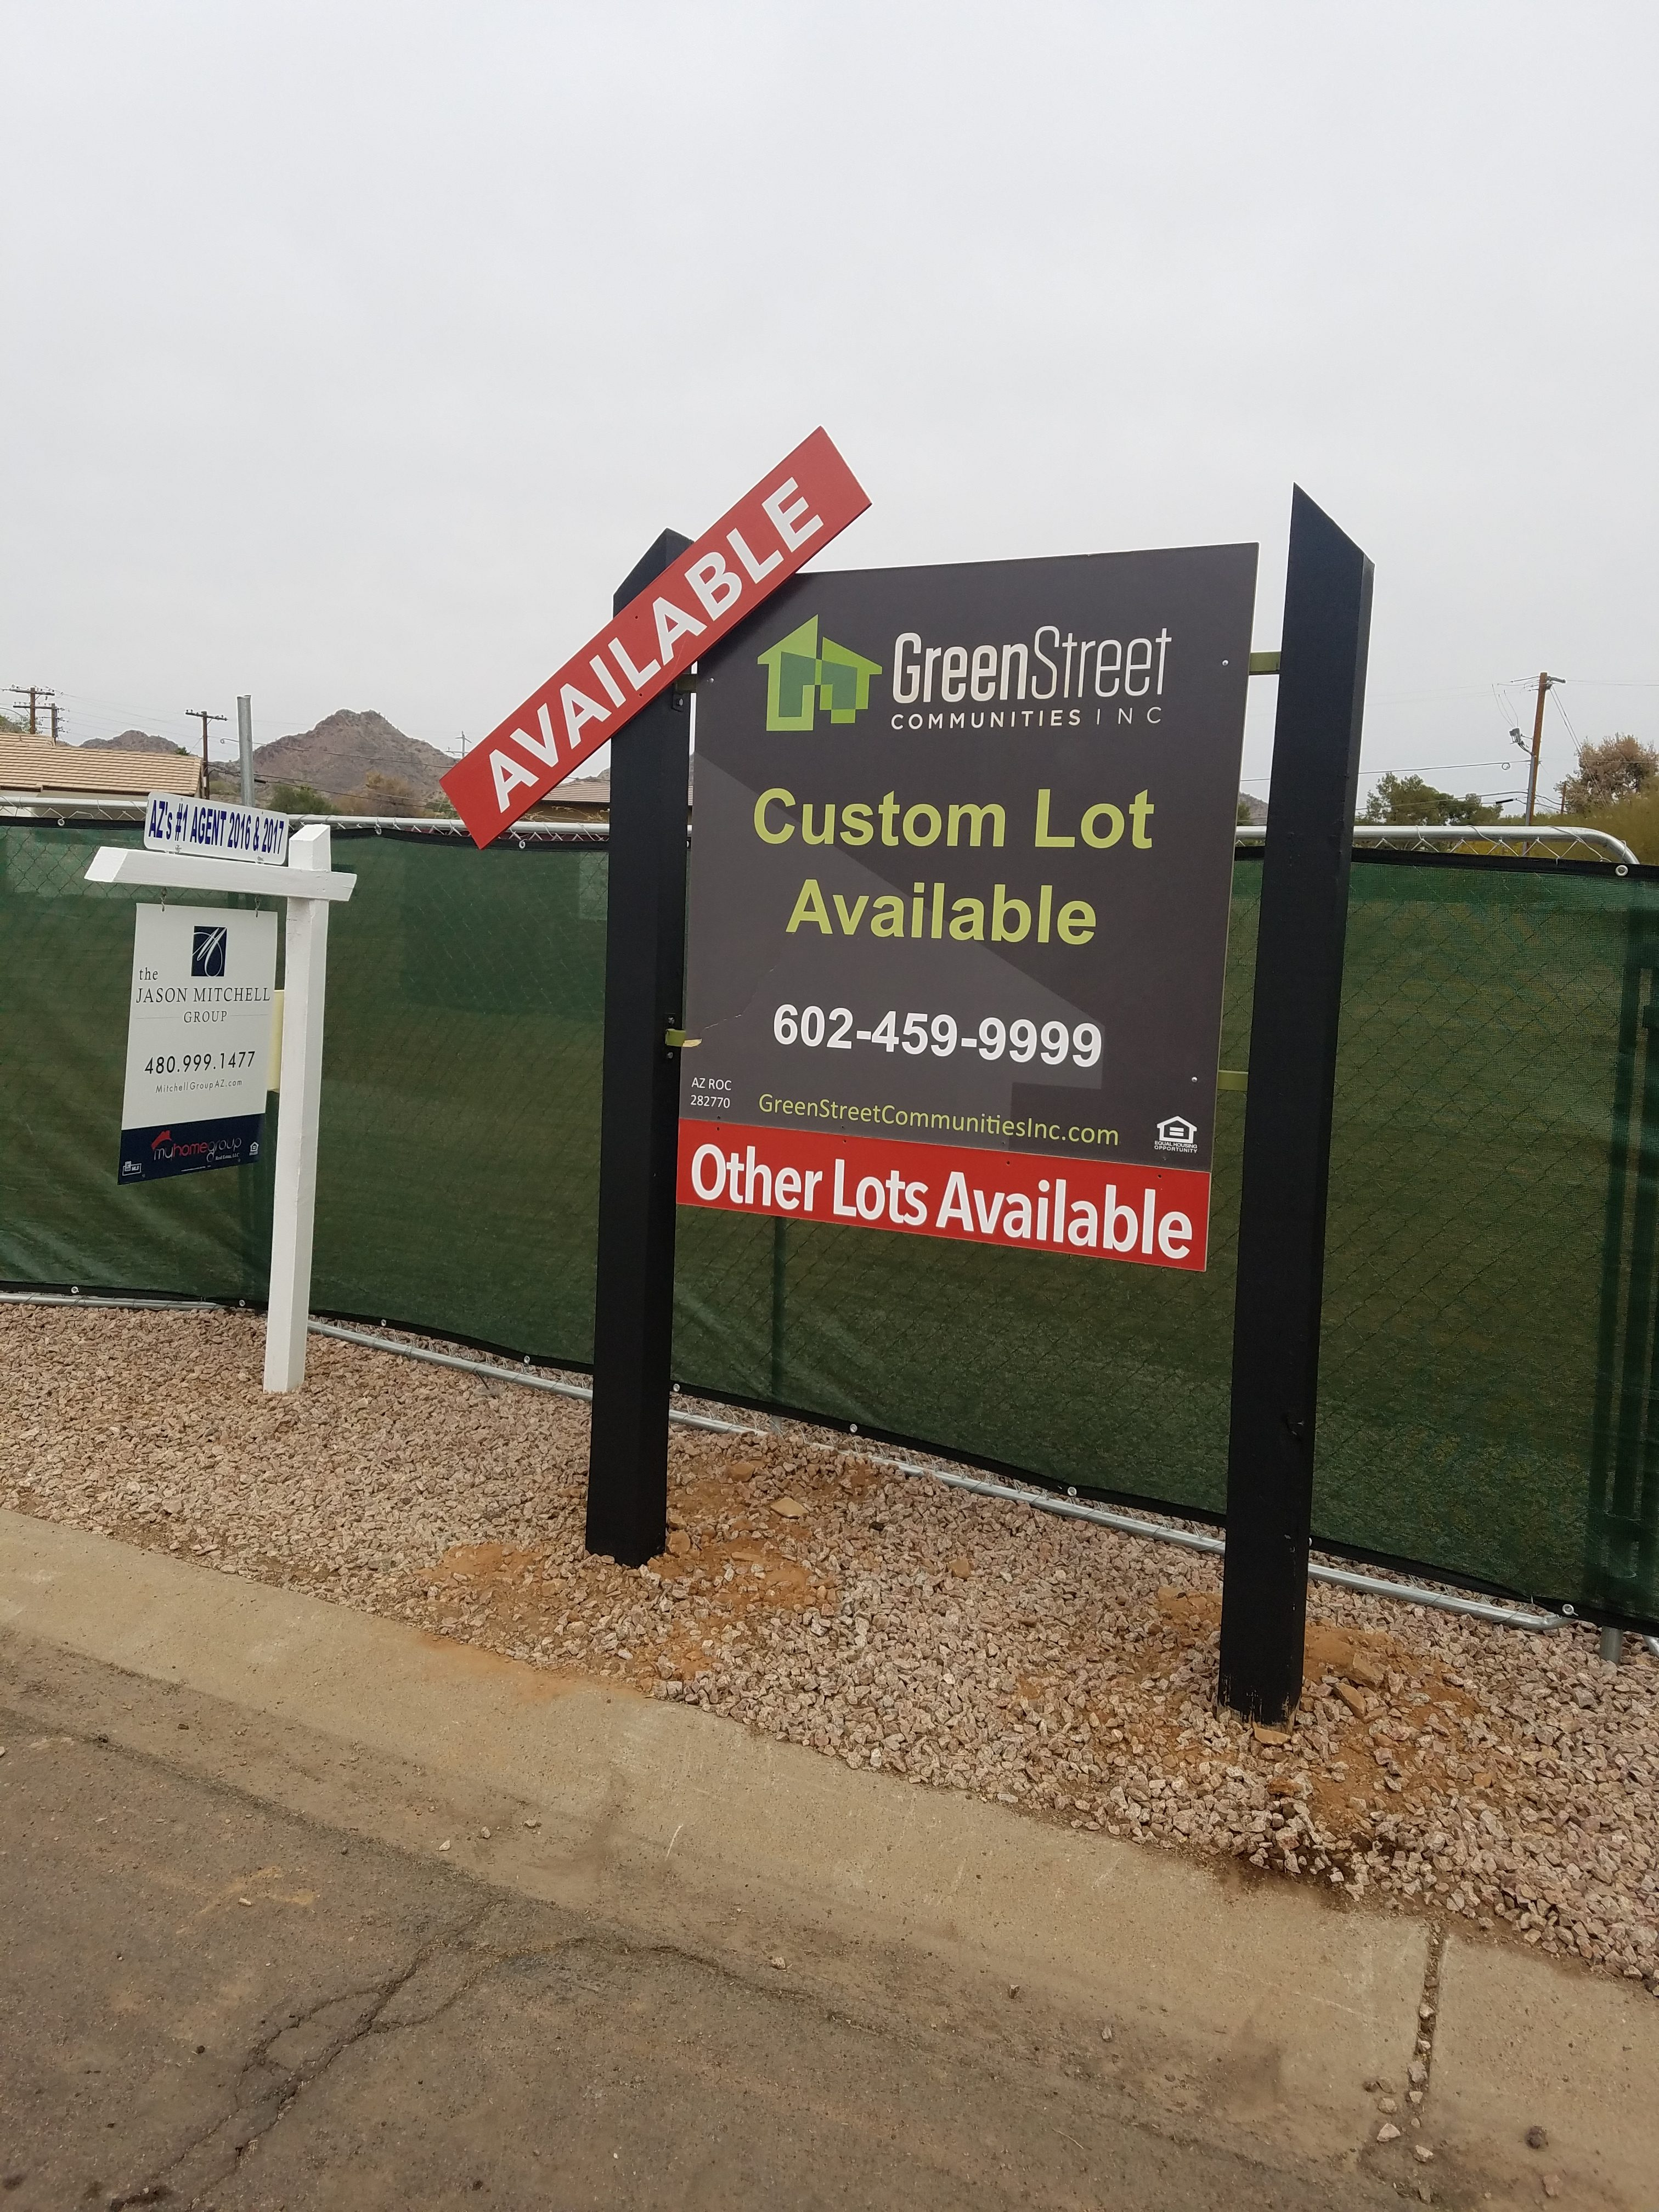 Commercial 4x8 sign